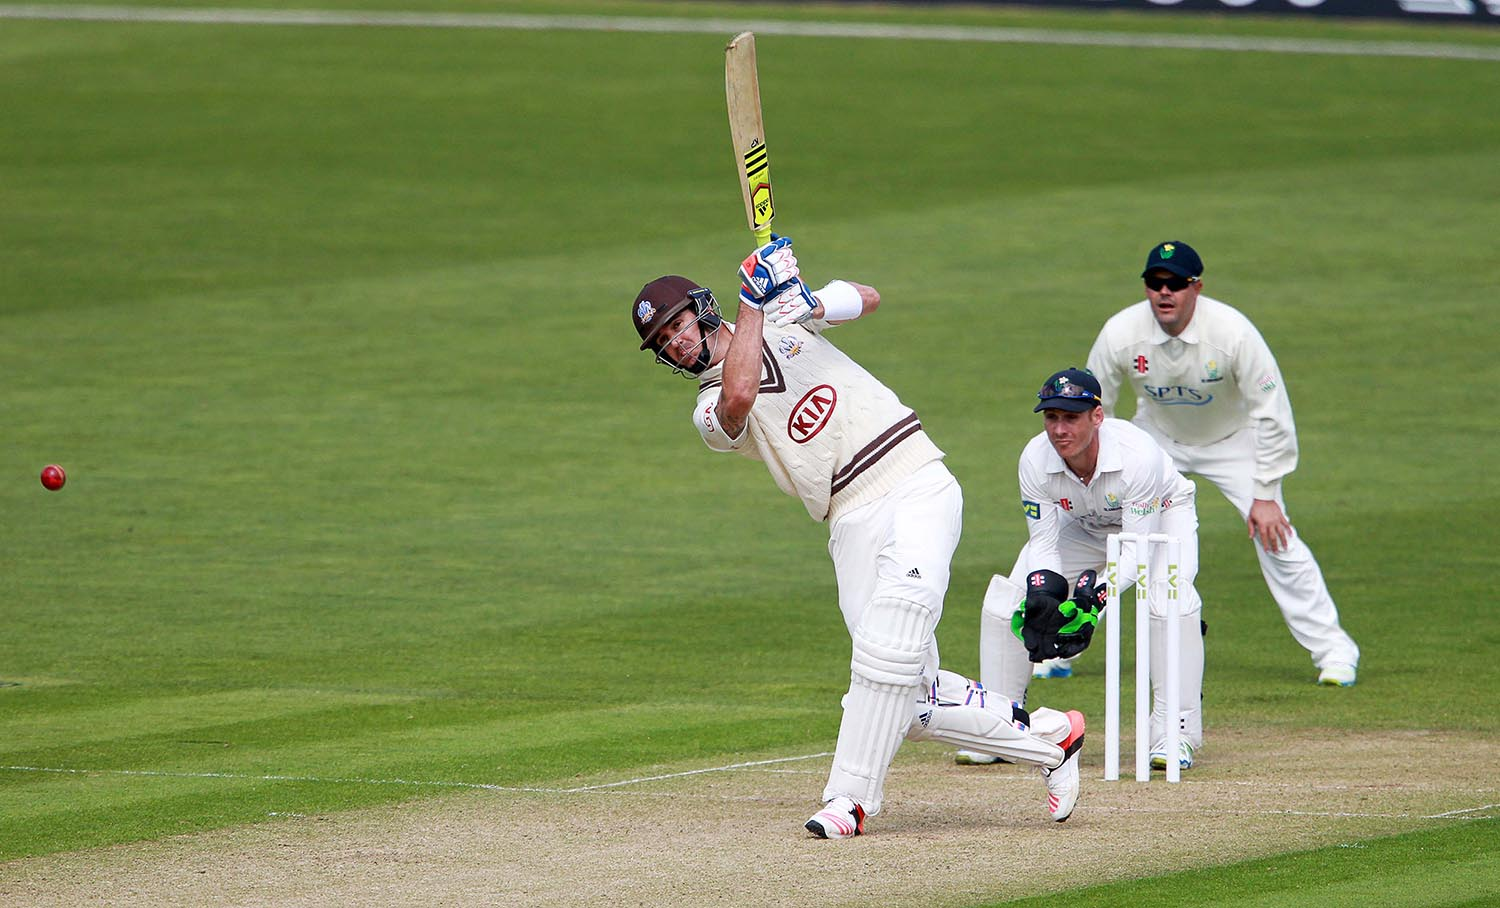 Kevin Pietersen batting for Surrey